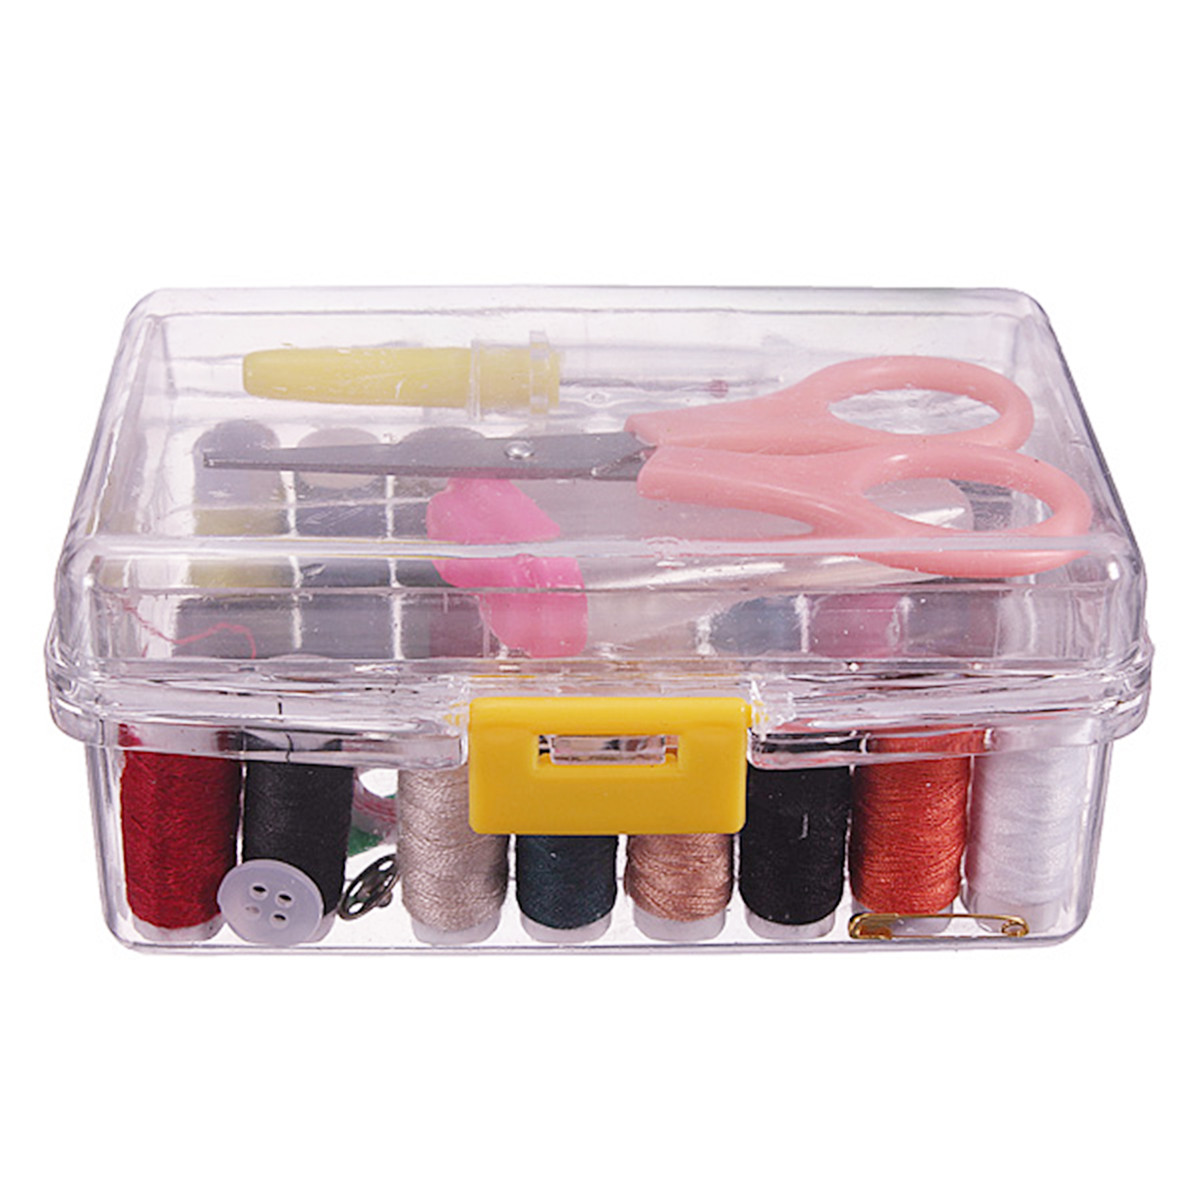 Meigar Sewing Kits Repair Travel Case Thread Threader Needle Tape Measure Scissor Thimble Storage Box Organizer Sewing Kit Supplies Set